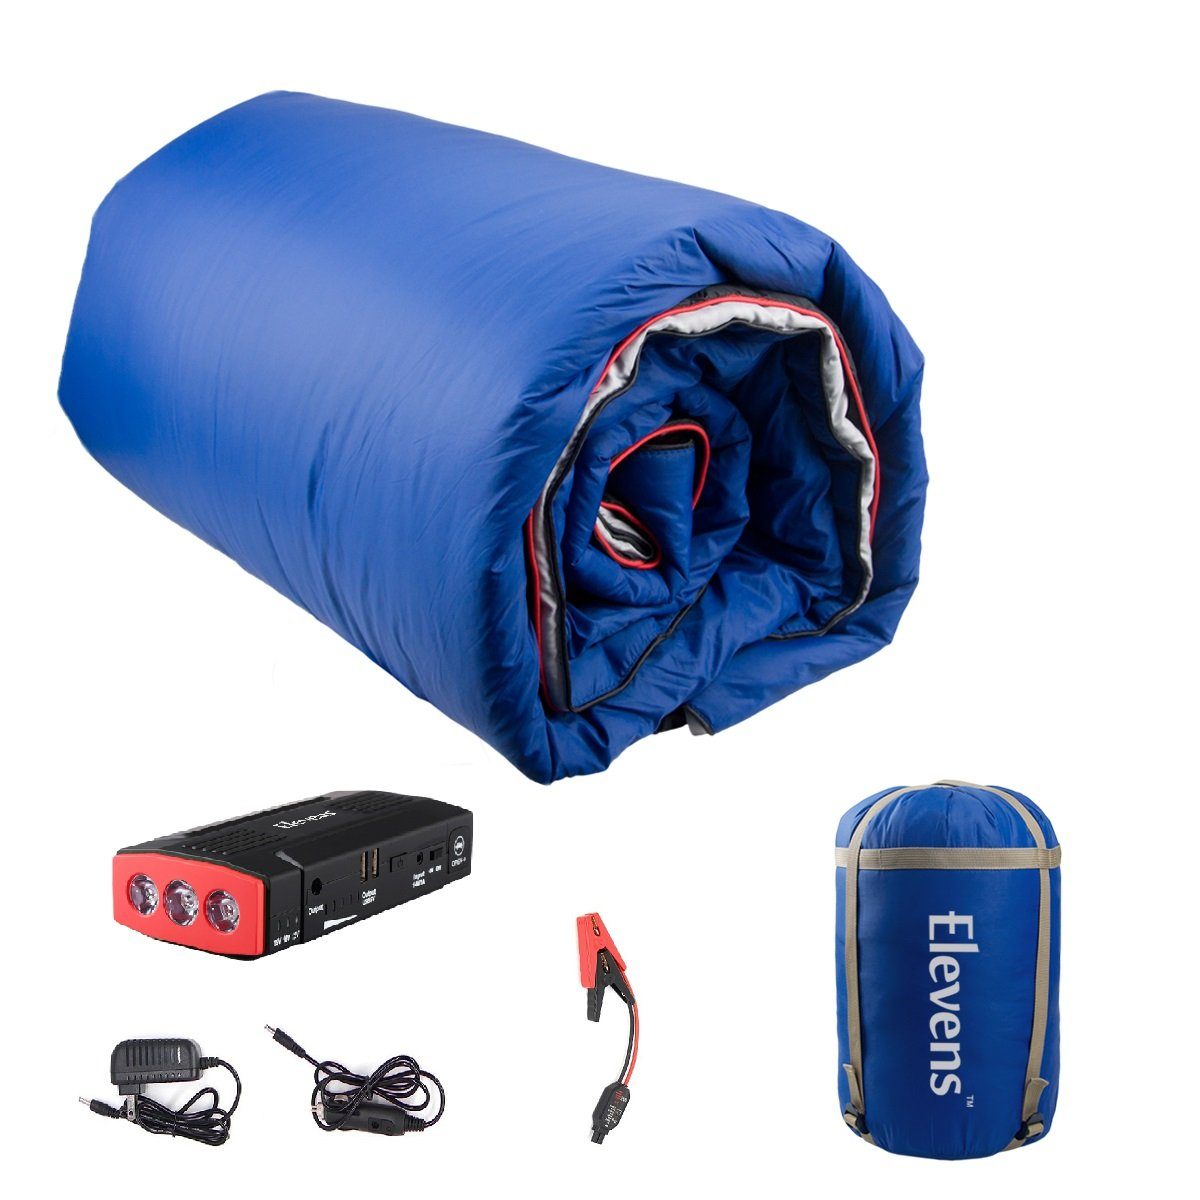 3-in-1 Battery Powered Down Blanket for 4-Season Traveling, Camping, Hiking & Outdoor Activities (Blue)